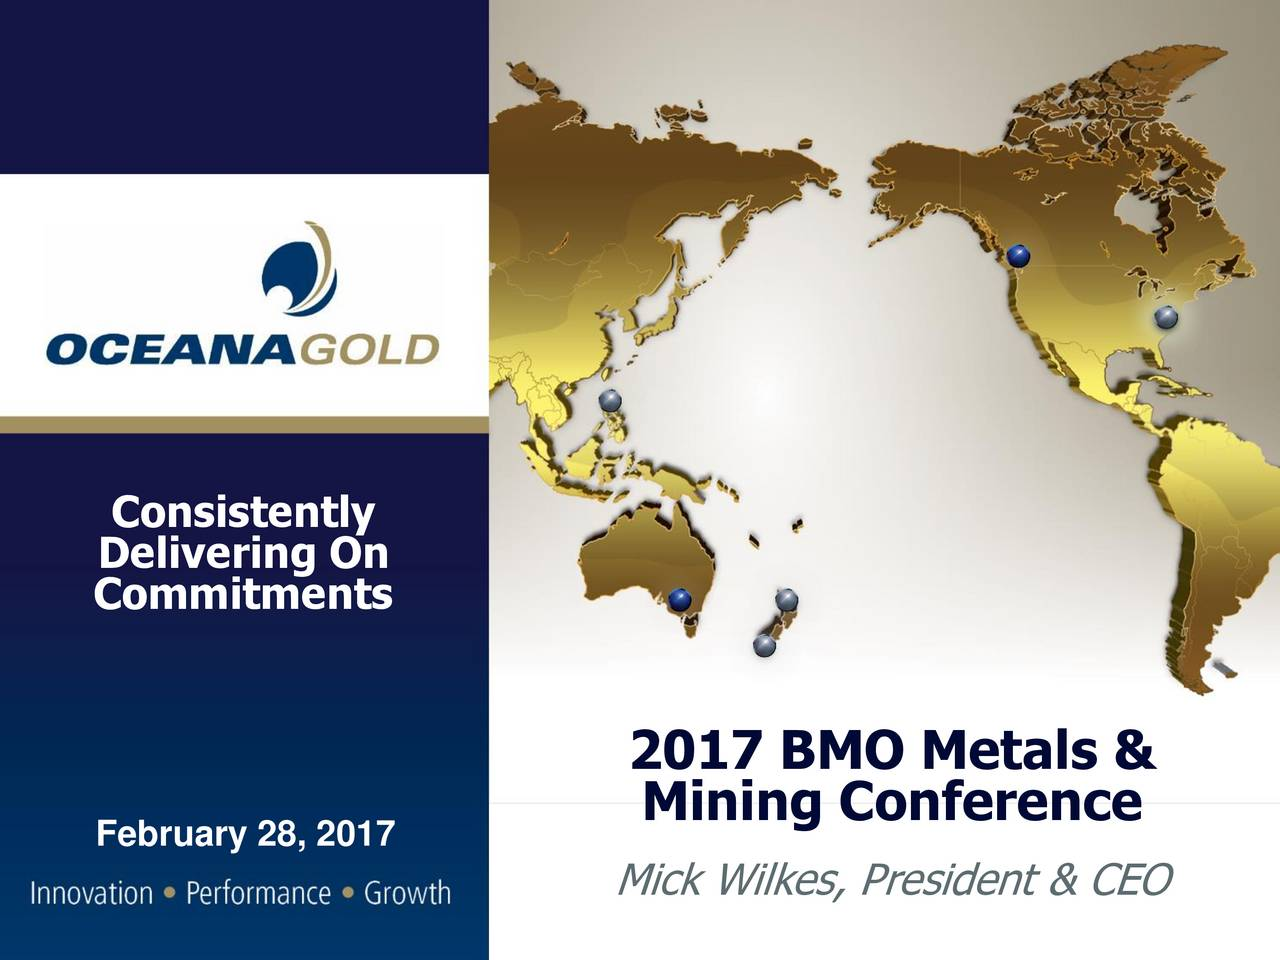 Commitments 2017 BMO Metals & Mining Conference February 28, 2017 Mick Wilkes, President & CEO